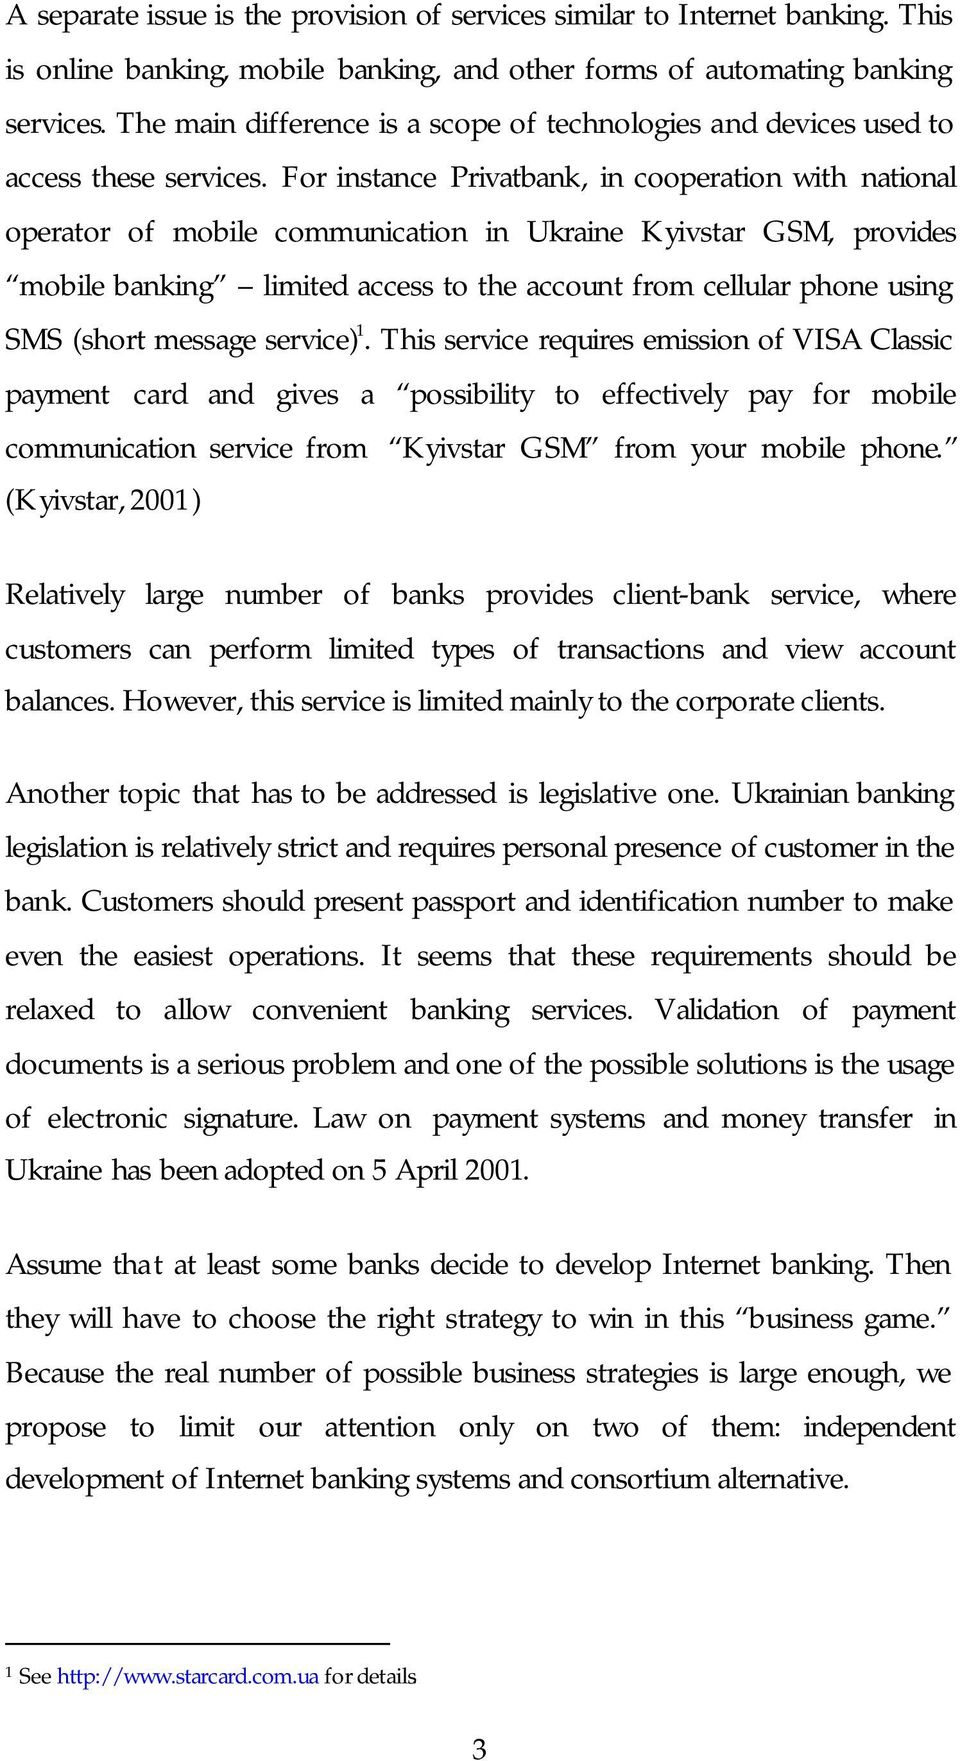 For instance Privatbank, in cooperation with national operator of mobile communication in Ukraine Kyivstar GSM, provides mobile banking limited access to the account from cellular phone using SMS